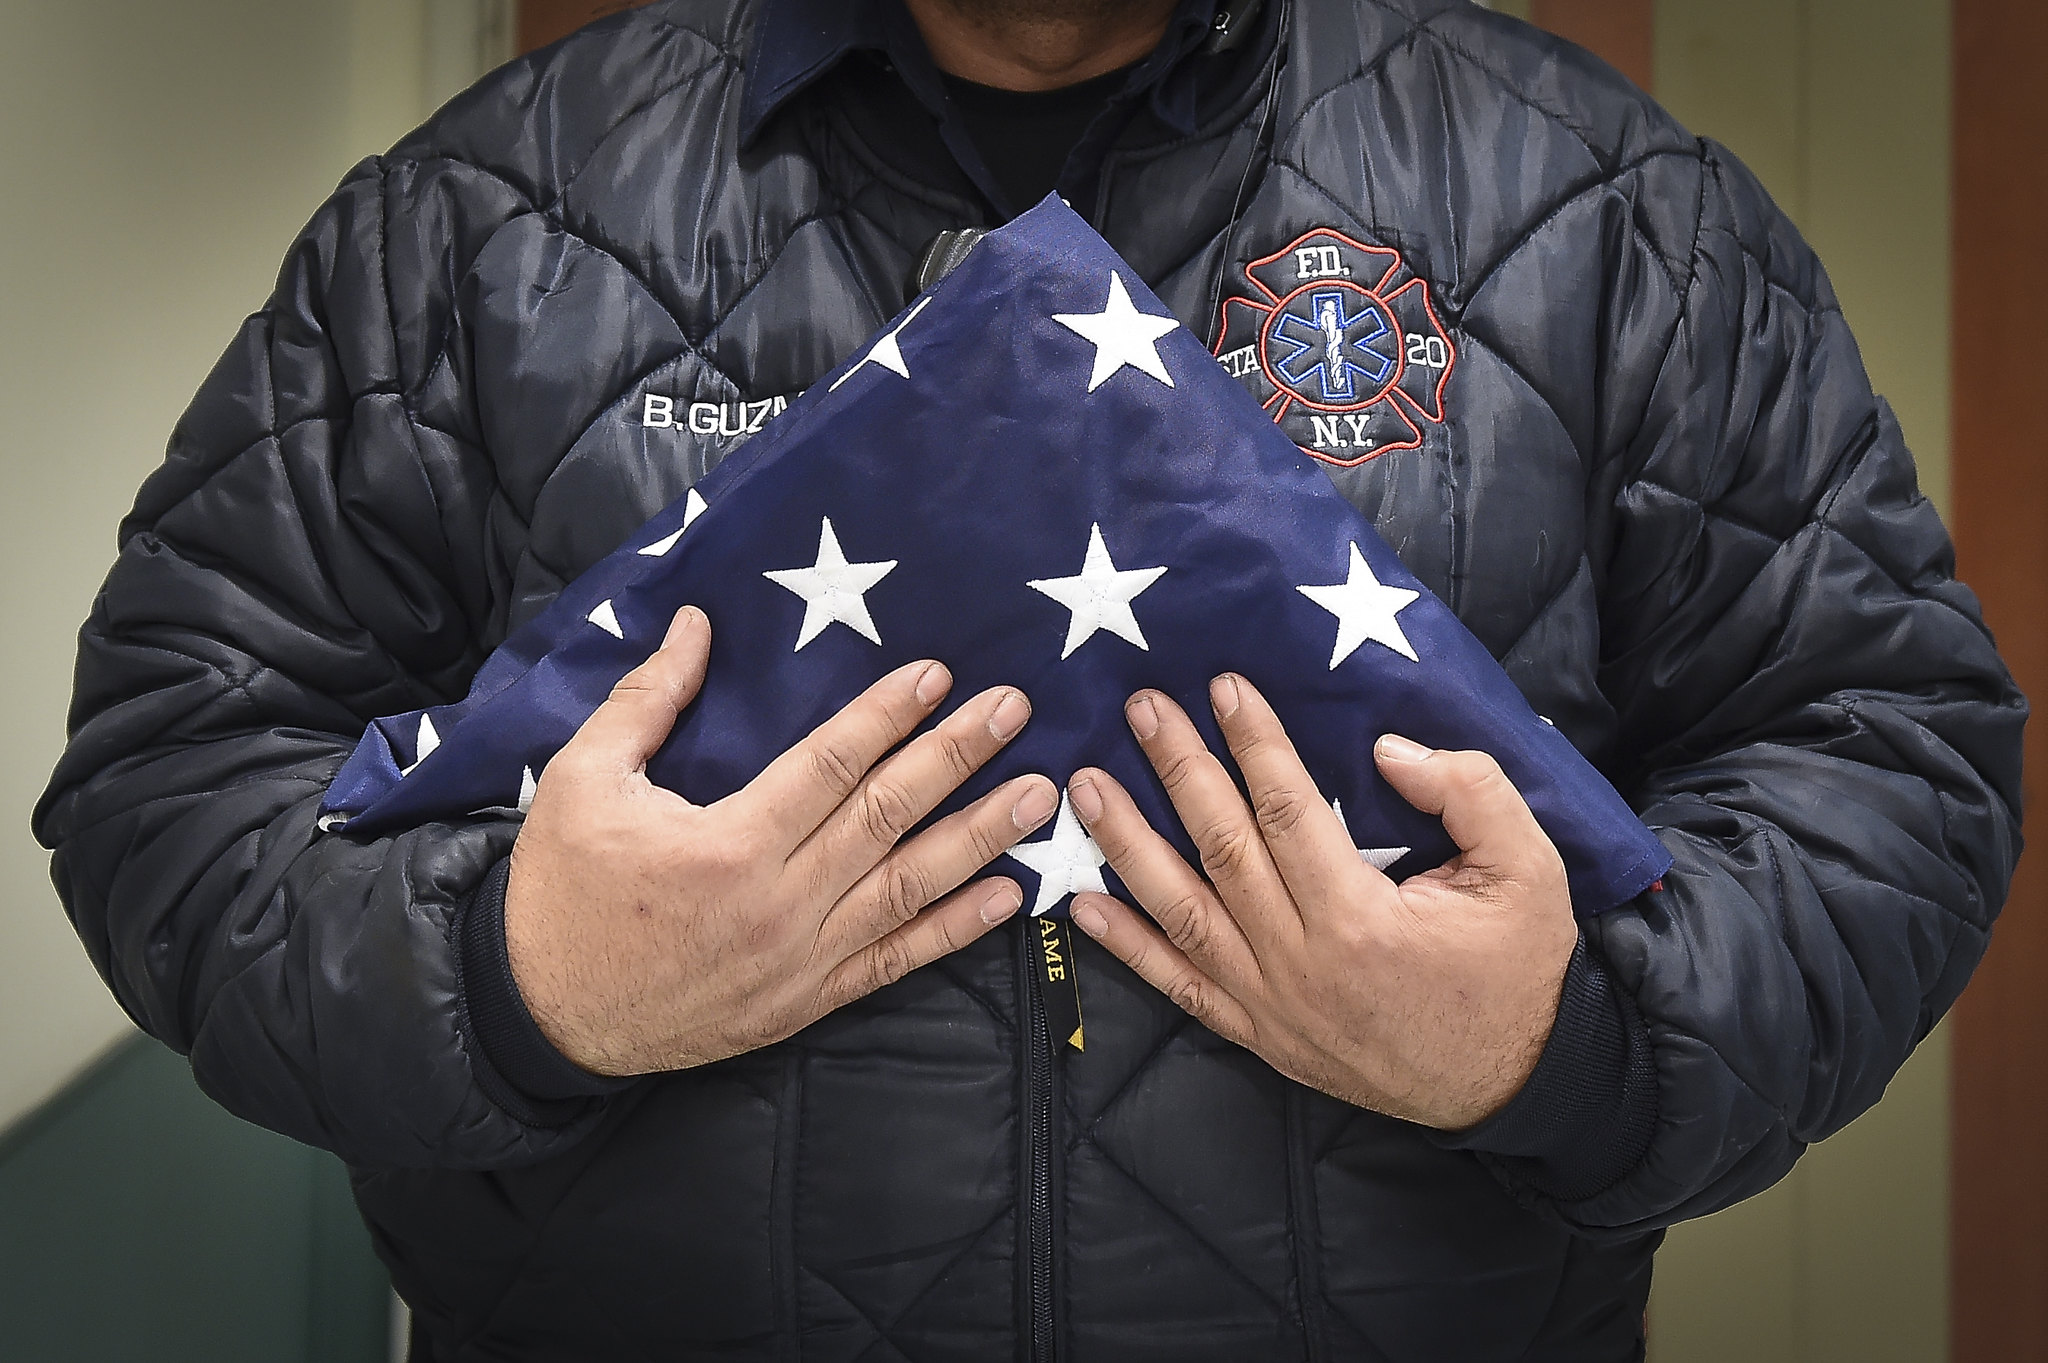 Benny Guzman of FDNY Station 20 in the Bronx holds a flag for a fallen EMT after a fatal incident during an evening shift on Thursday, March 16, 2017 in the Bronx, NY. Edwin J. Torres/Mayoral Photography Office